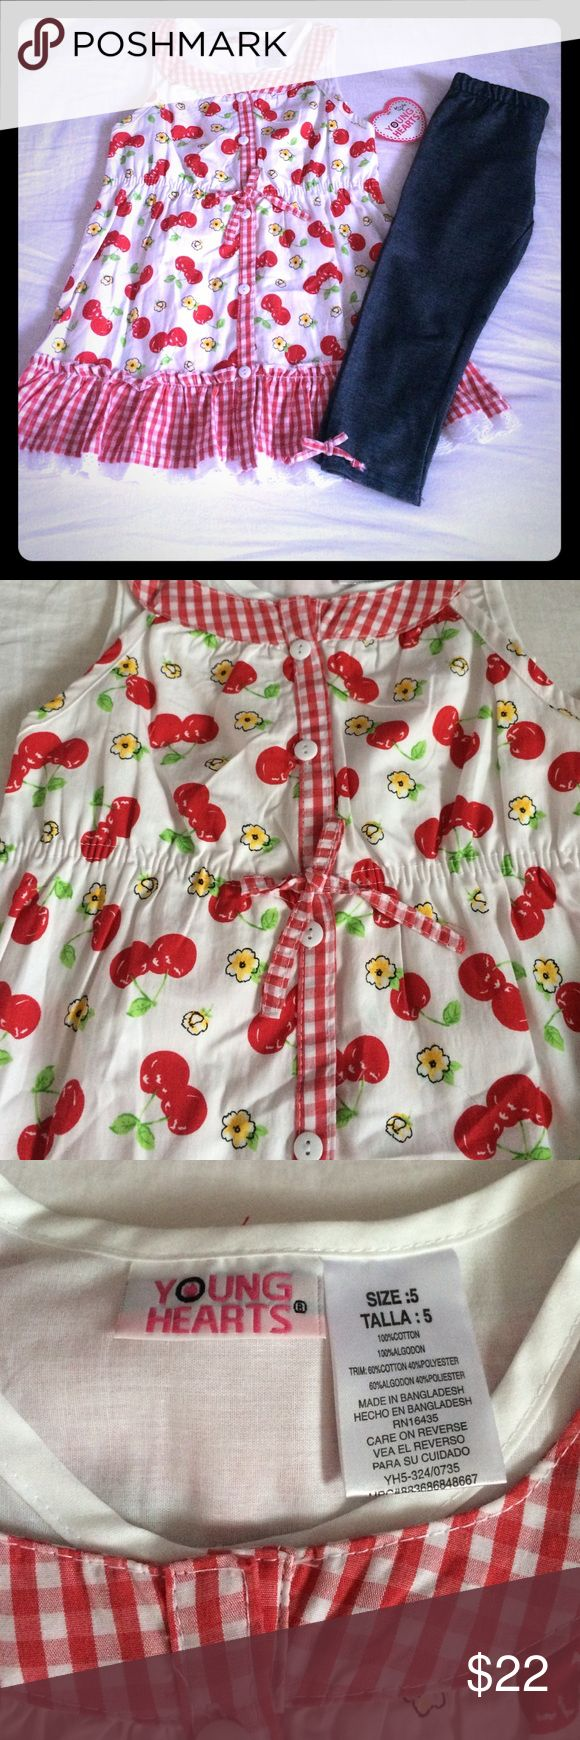 🍒NWT Young Hearts Cherry Outfit🍒 Super cute spring/summer outfit that includes sleeveless cherry print tunic with plaid print trimming & coordinating capri jeggings. NWT! Size 5. Smoke FREE home as always! 💕 PRICE FIRM Young Hearts Matching Sets